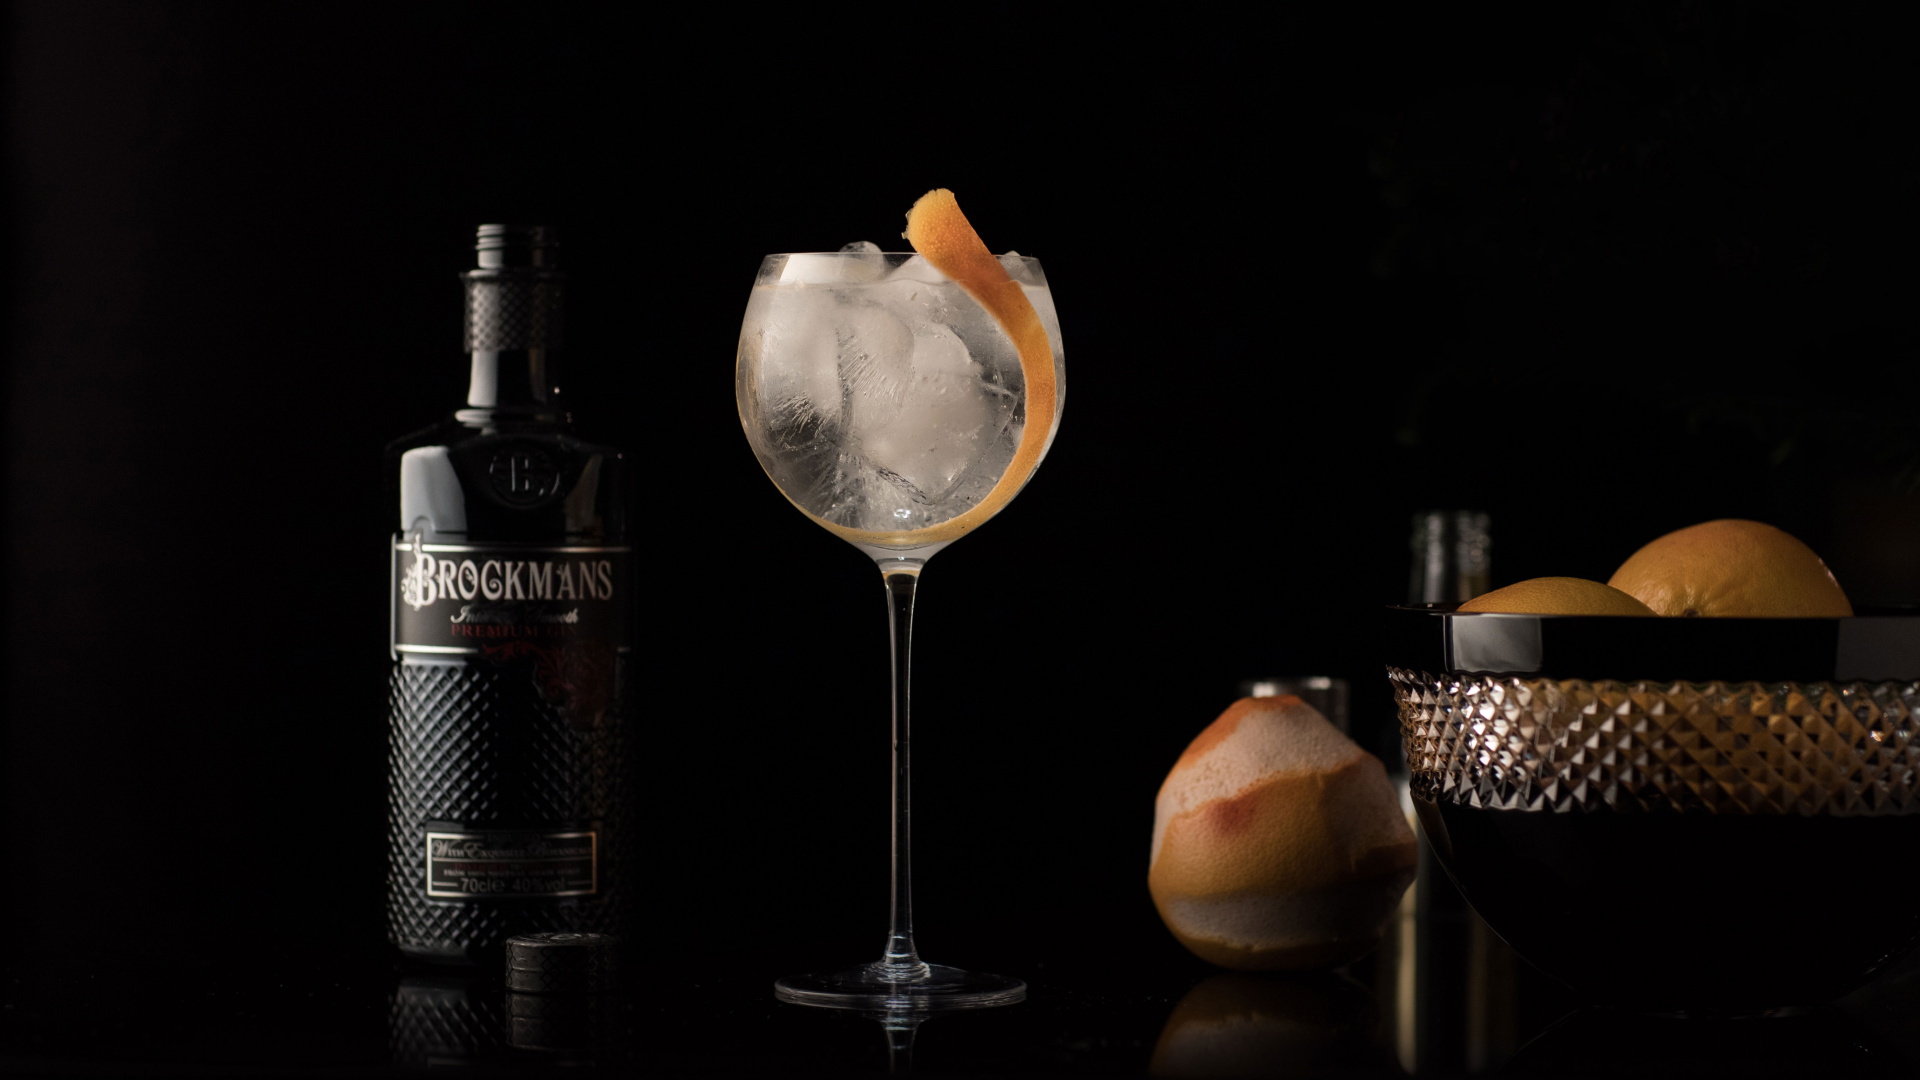 Win a year's supply of Brockmans Gin